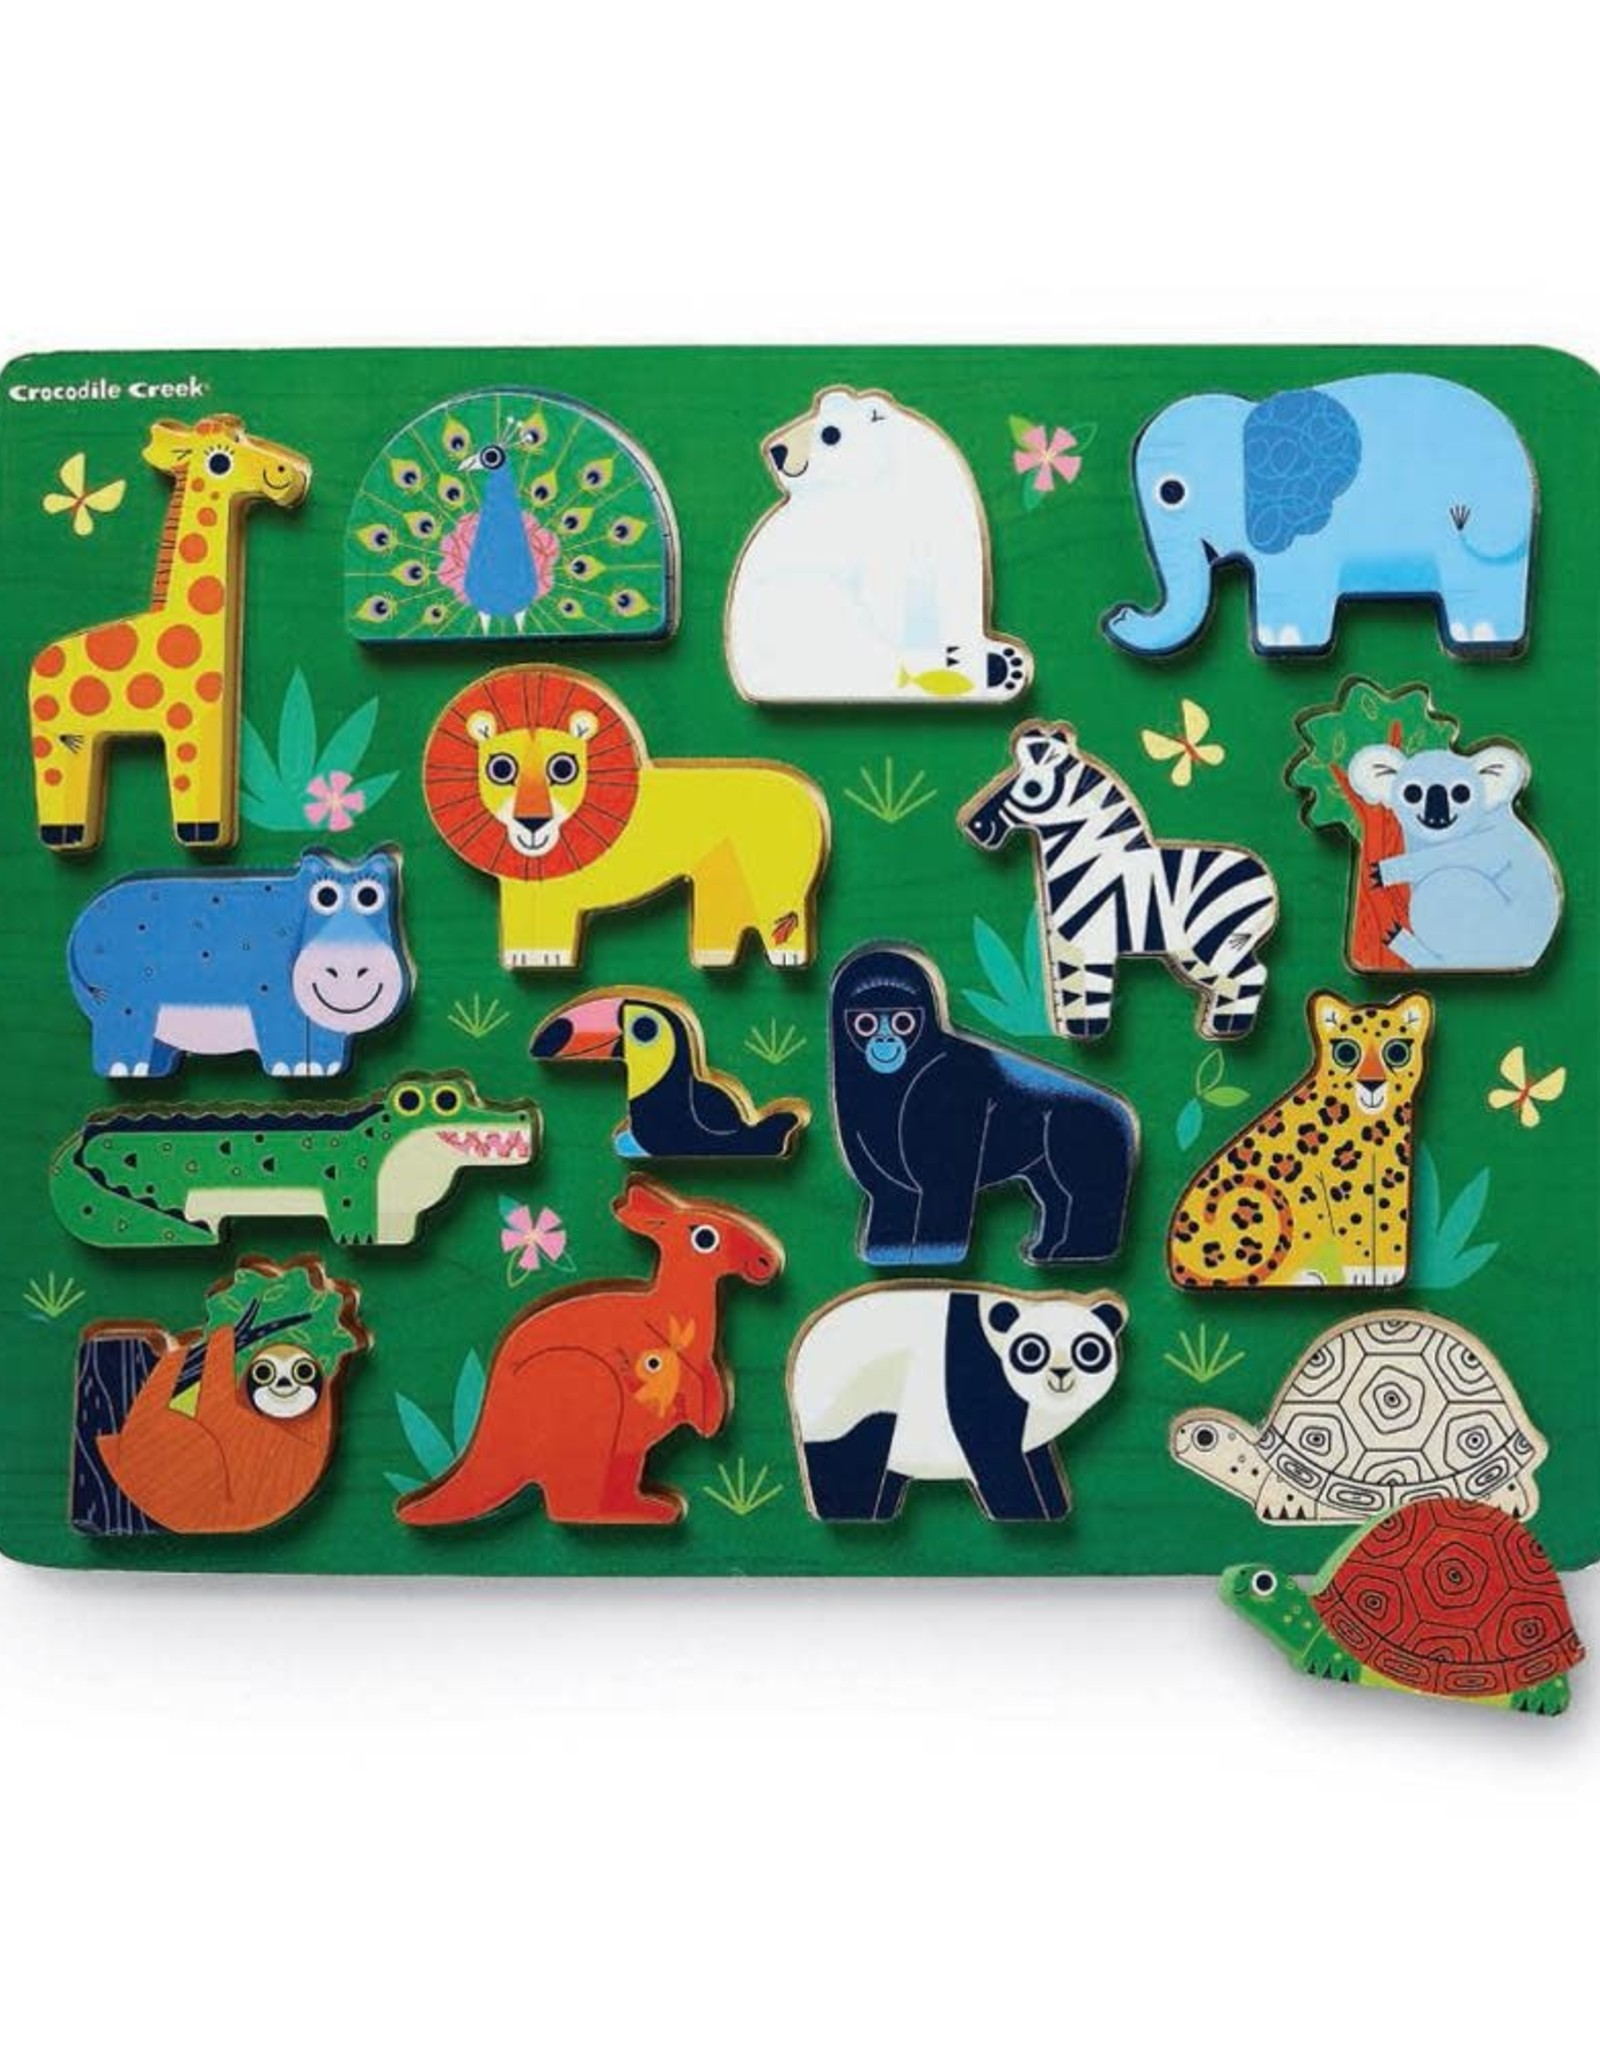 Crocodile Creek Crocodile Creek Let's Play 16 pc Puzzle  - Animals